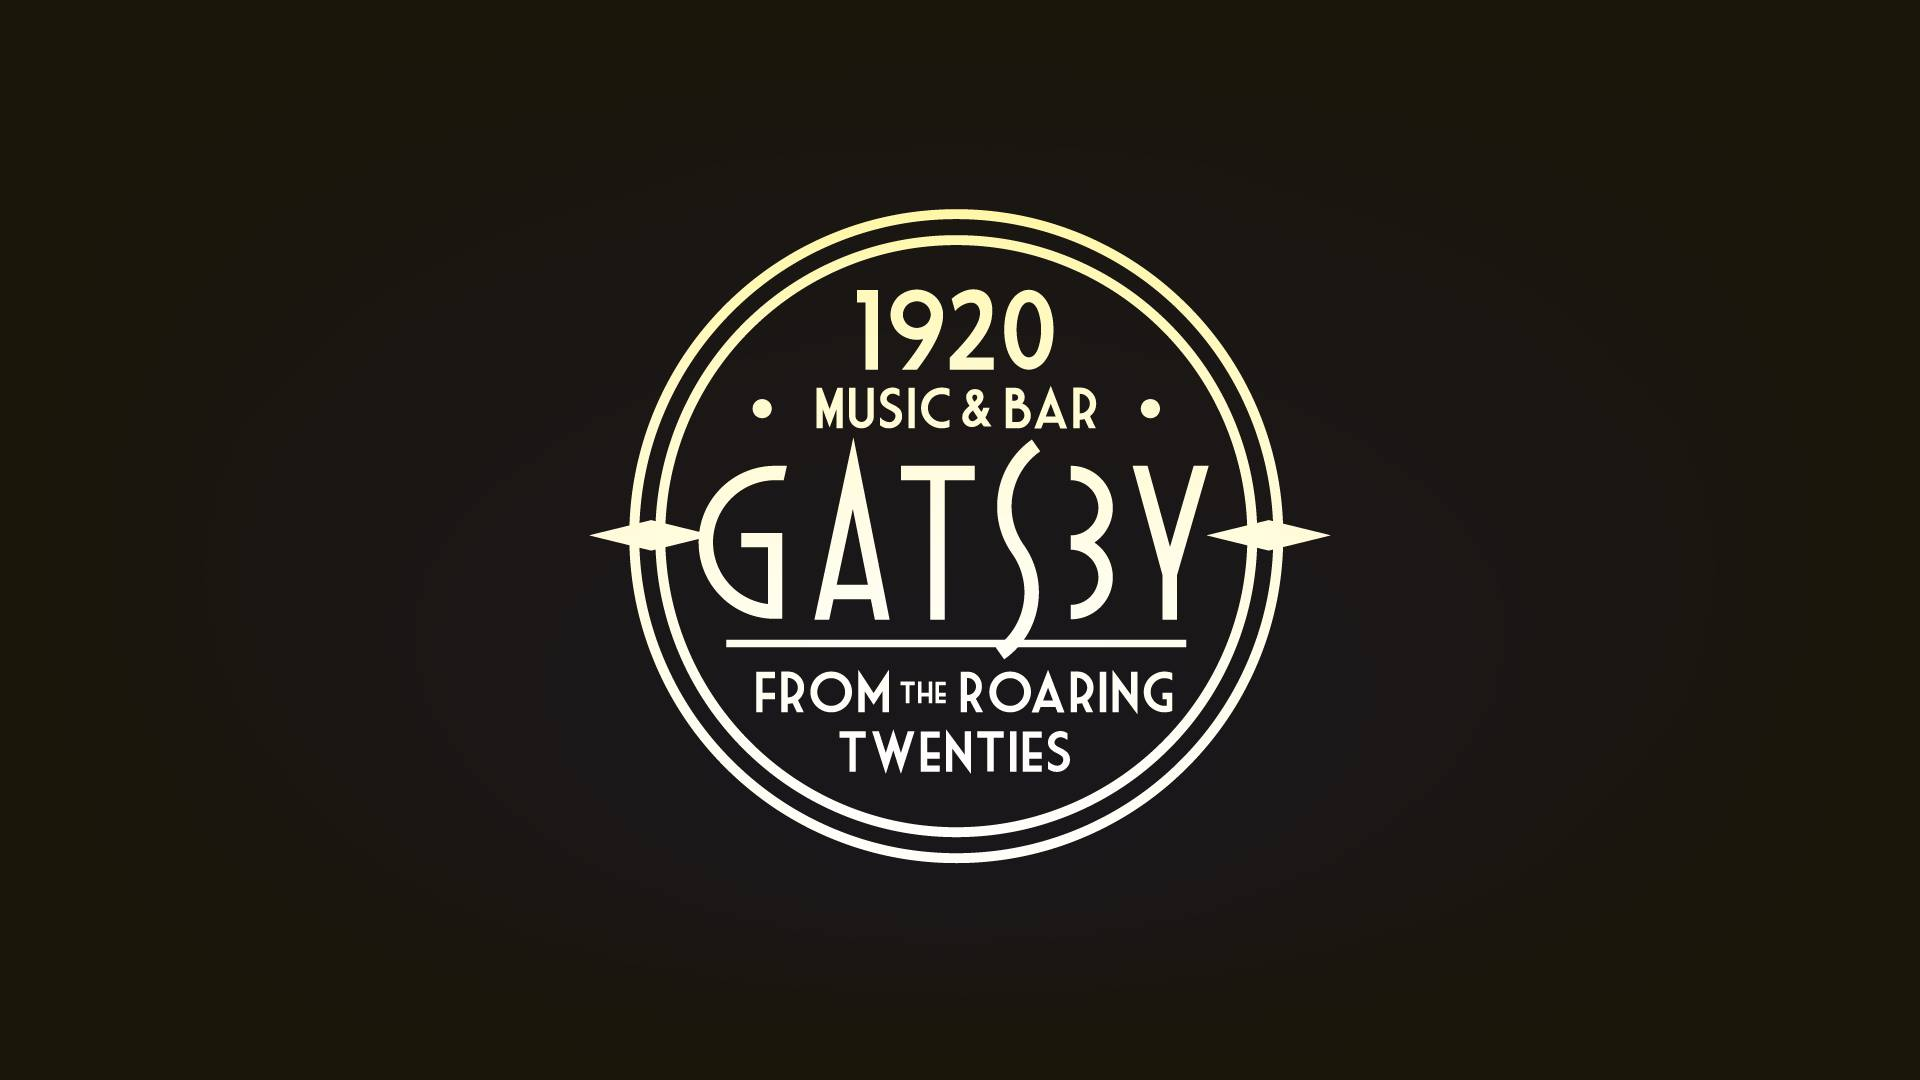 Gatsby - Music&Bar from 1920 w/Black Bottom Jazz Band